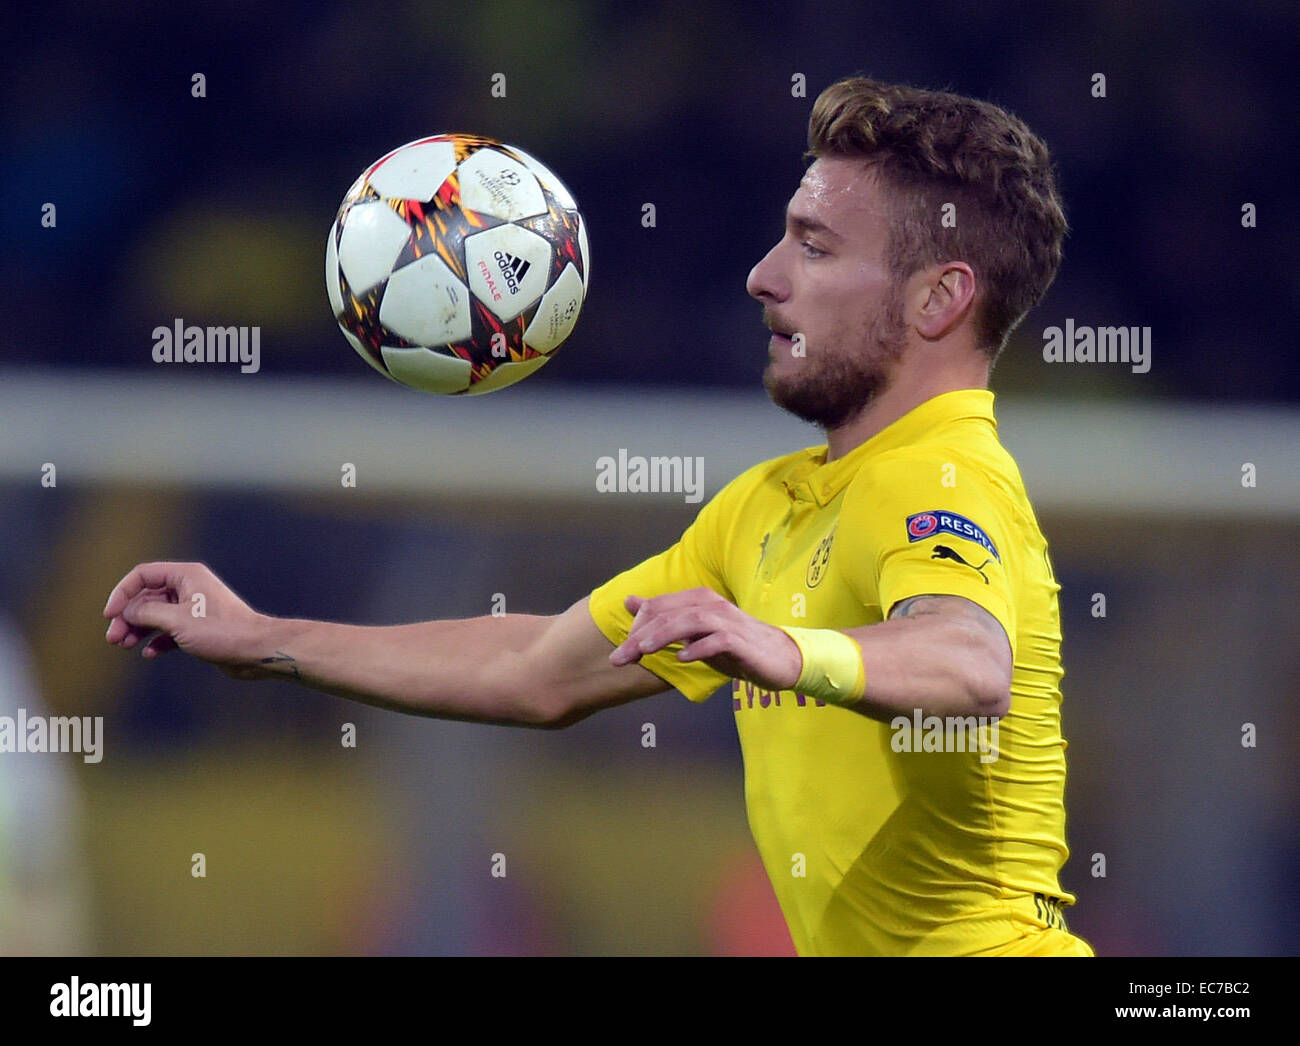 Dortmund's Ciro Immobile in action during the Champions League Group D football match between BorussiaDortmund - Stock Image